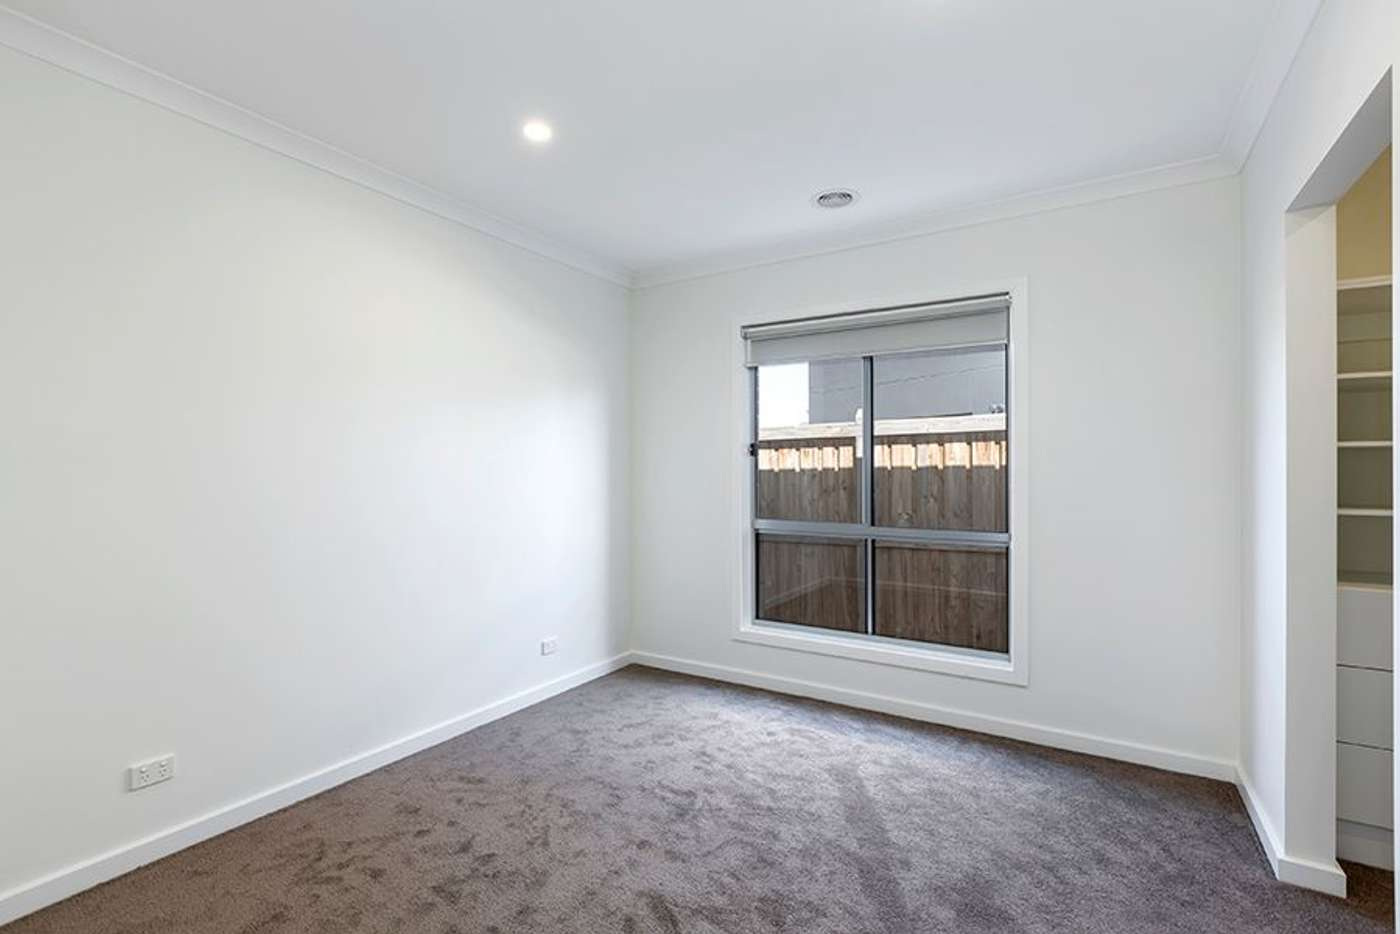 Sixth view of Homely house listing, 13 Calvert Place, Point Cook VIC 3030